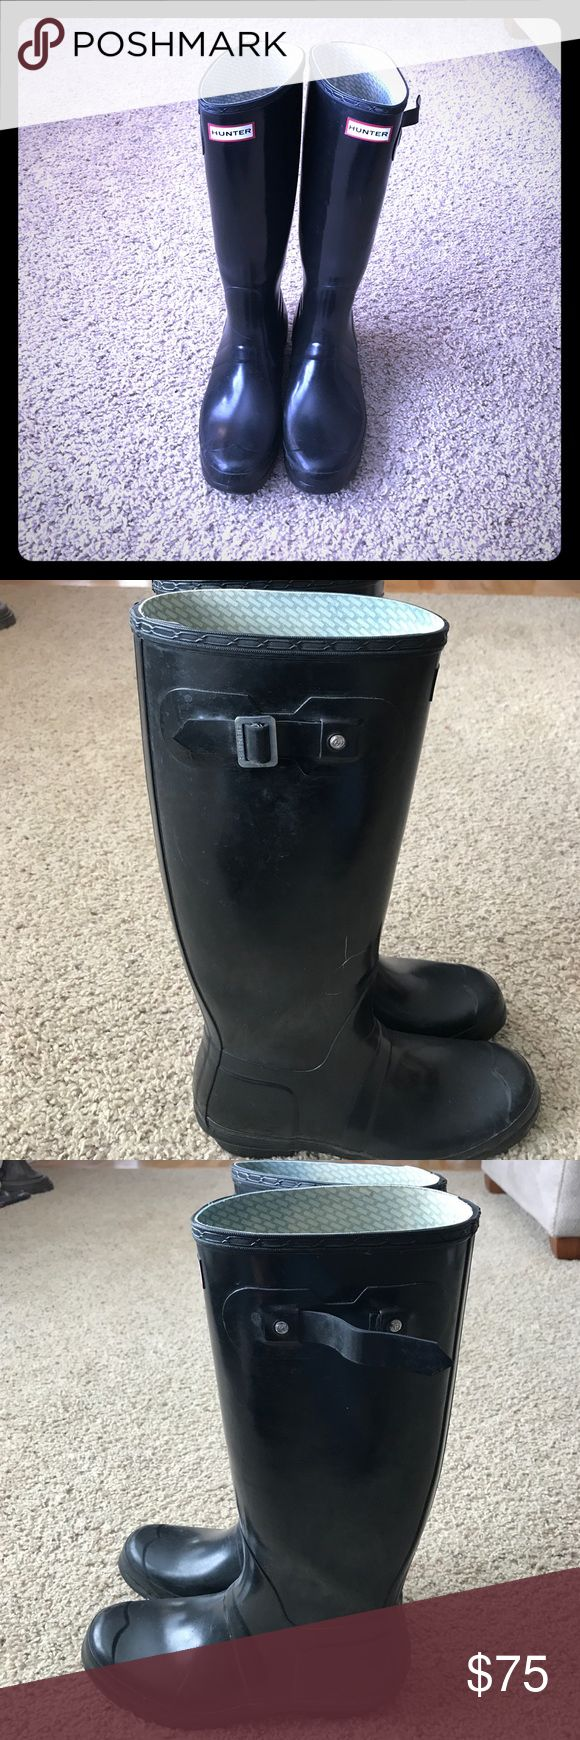 Hunter boots Black glossy hunter wellys. In great condition. The buckle on the left boot fell of so that's why they are so cheap. Hunter Boots Shoes Winter & Rain Boots